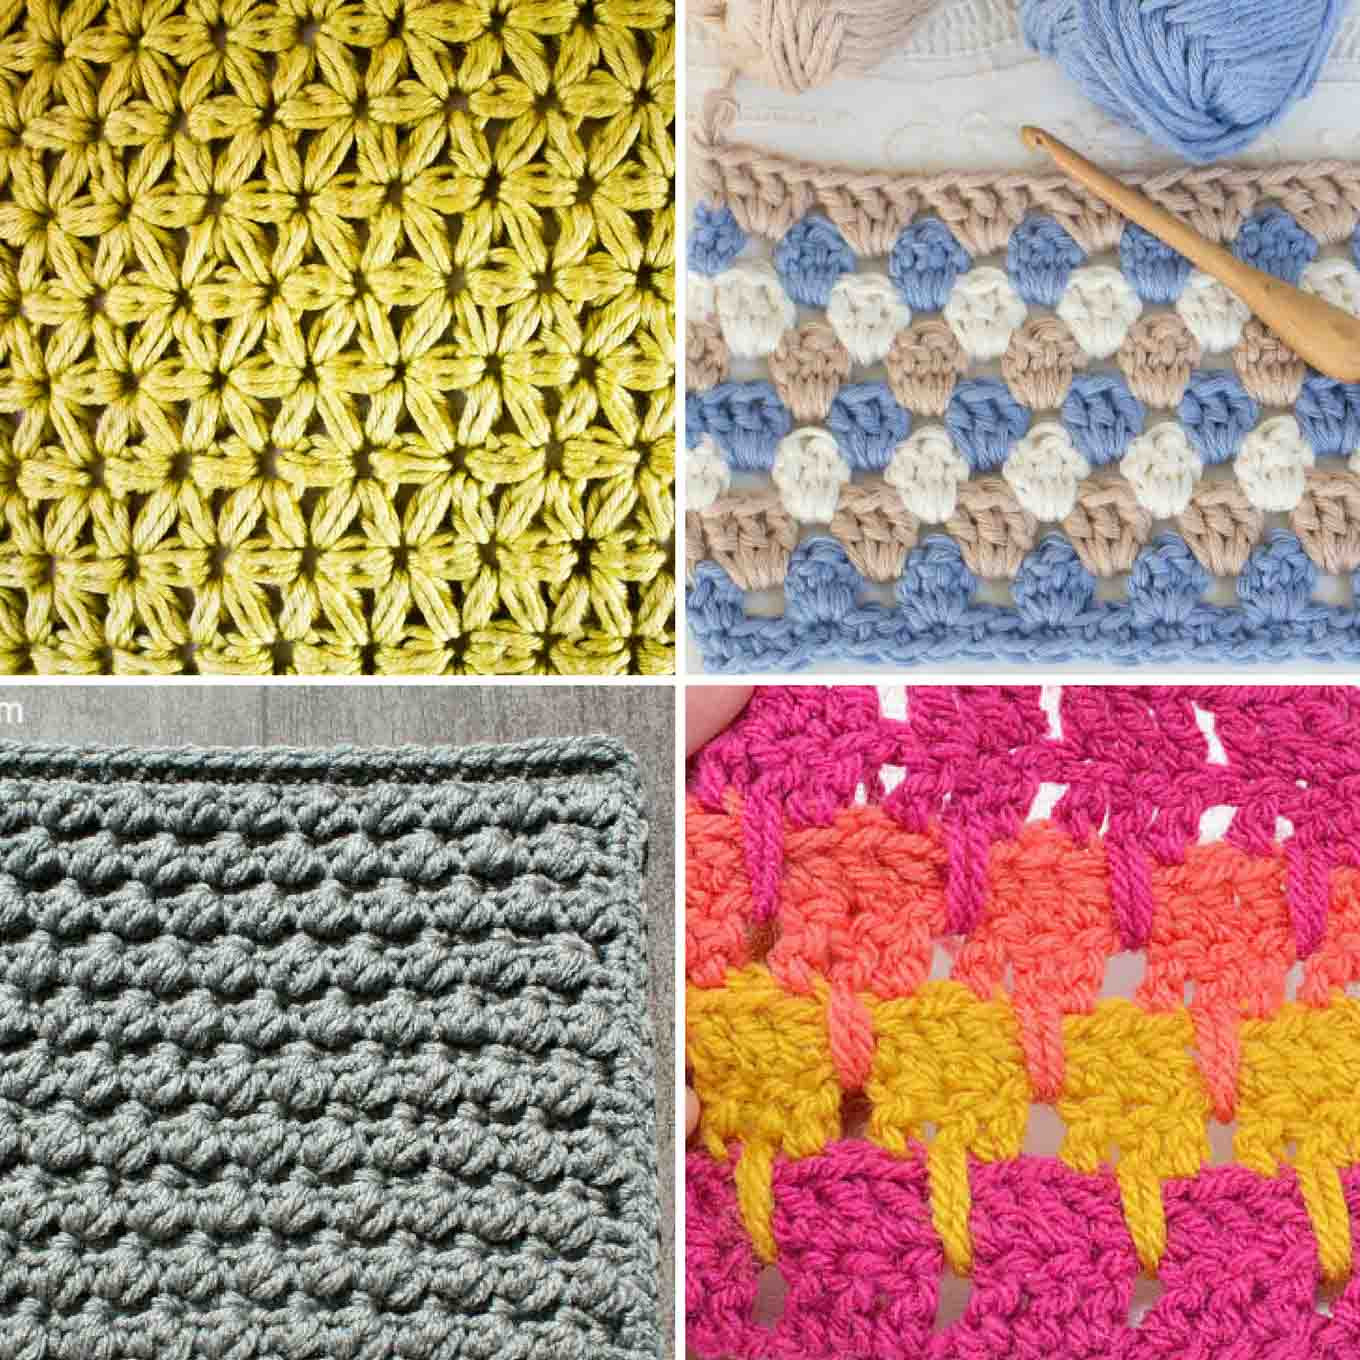 Crochet Throw Inspirational 25 Crochet Stitches for Blankets and Afghans Make & Do Crew Of Luxury 41 Pics Crochet Throw